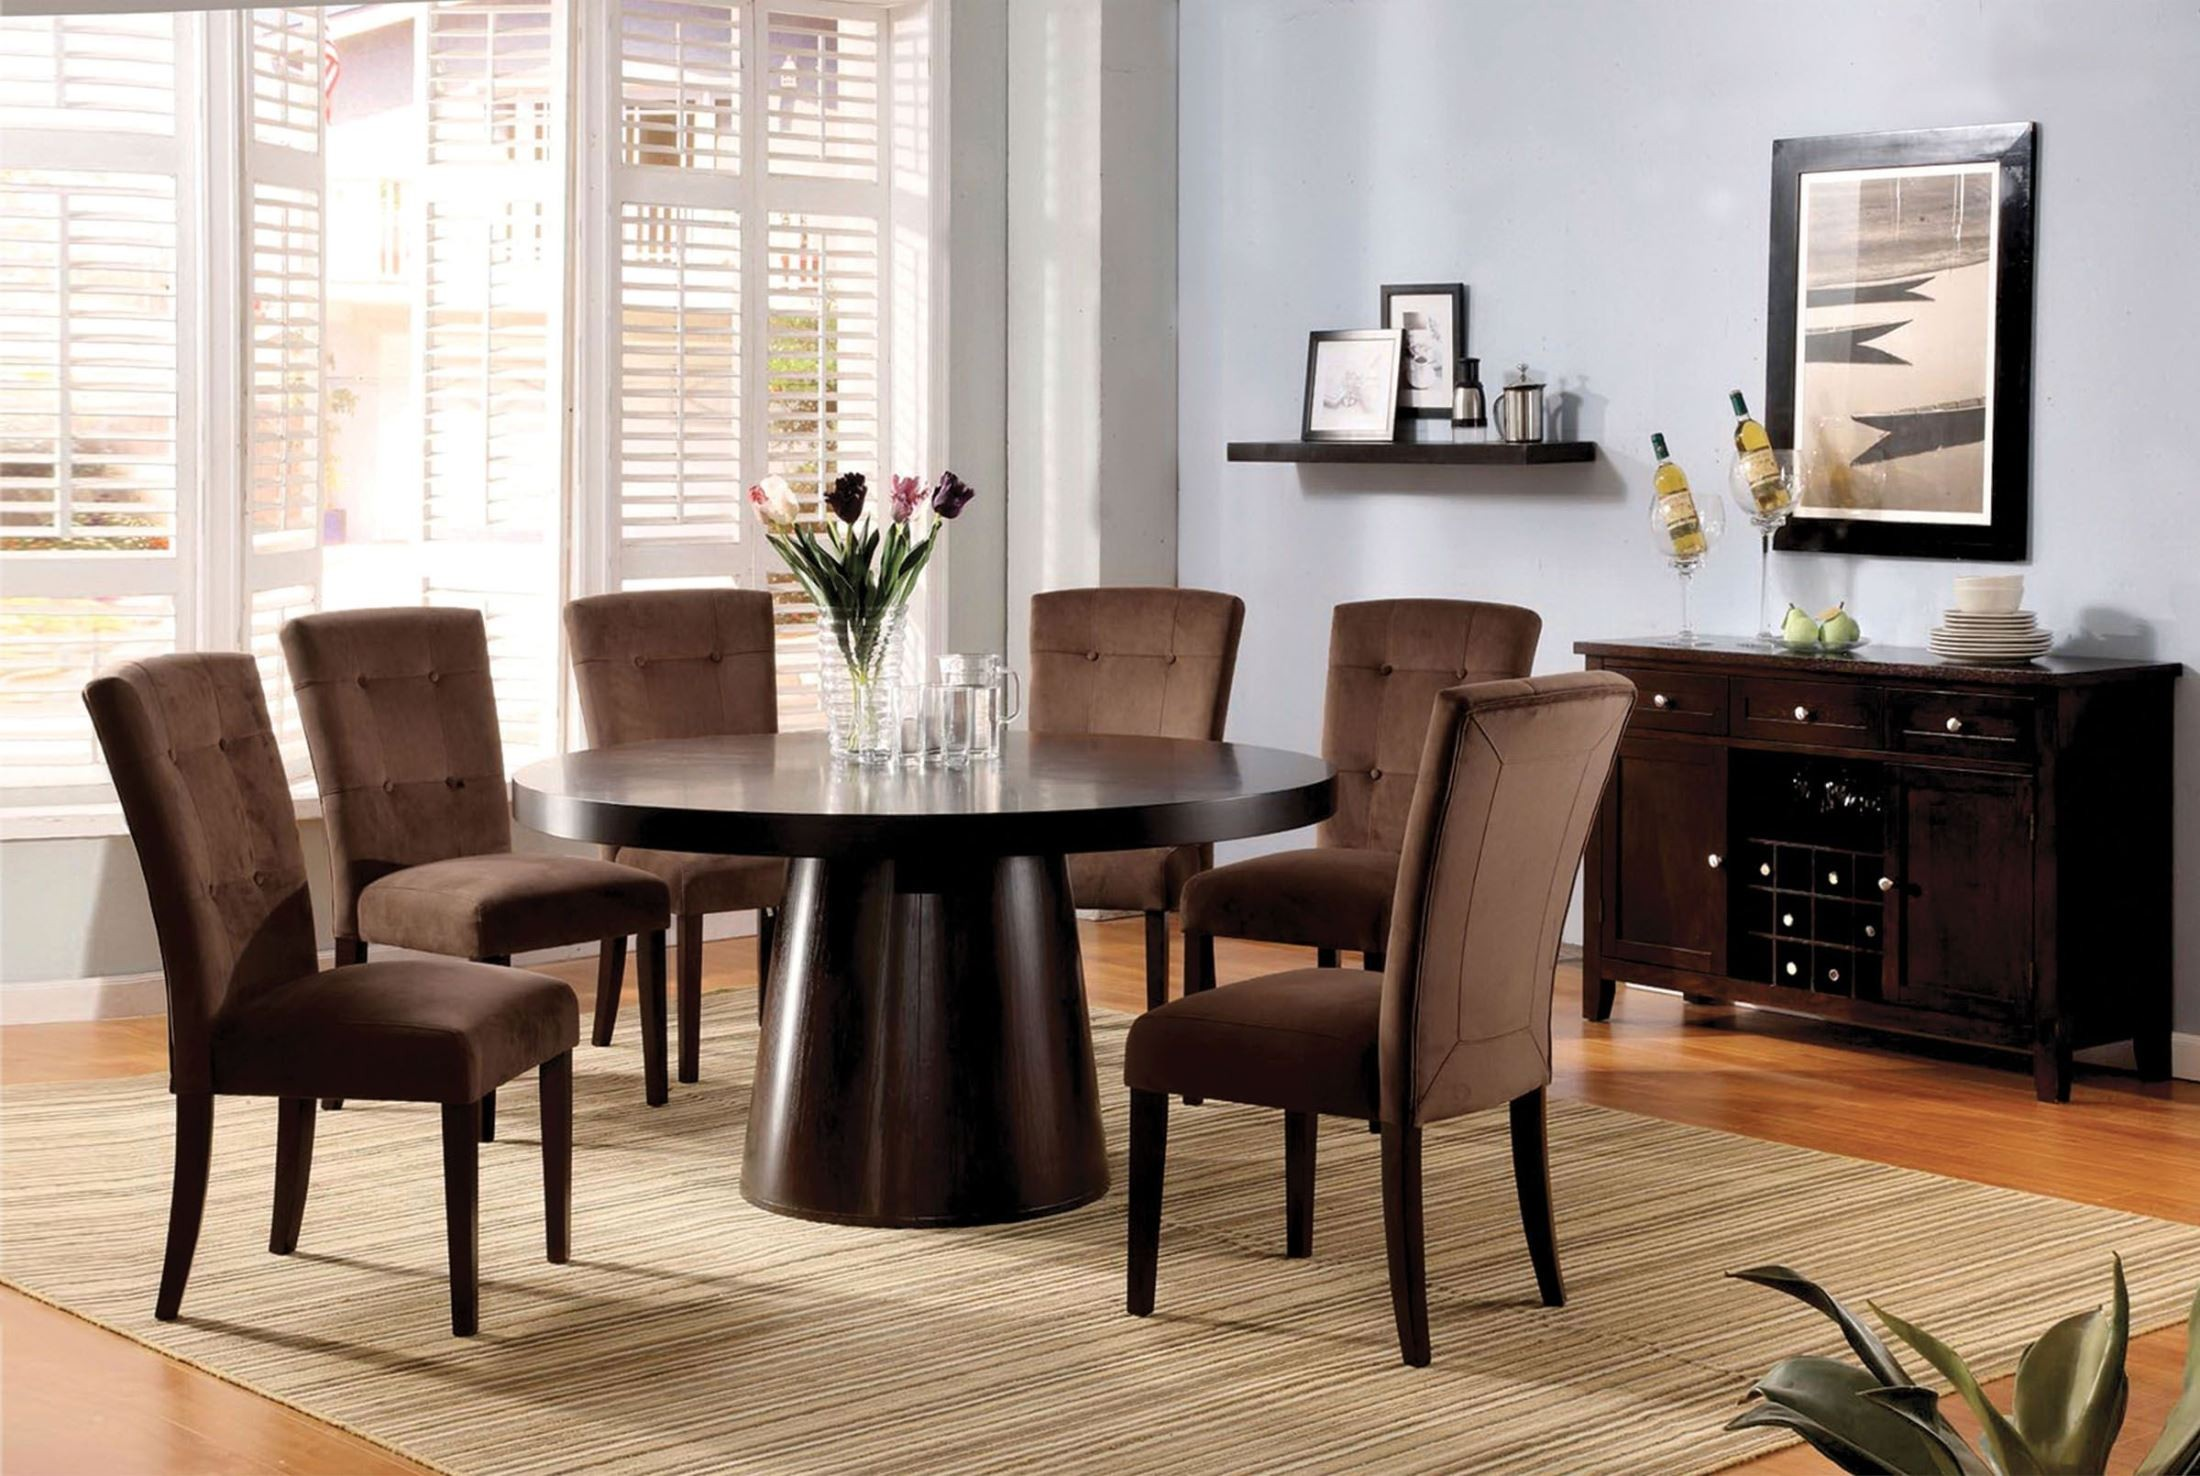 Dining Room Sets For Cherry Dining Room Chairs At Cherry Dining Room Set For Sale In